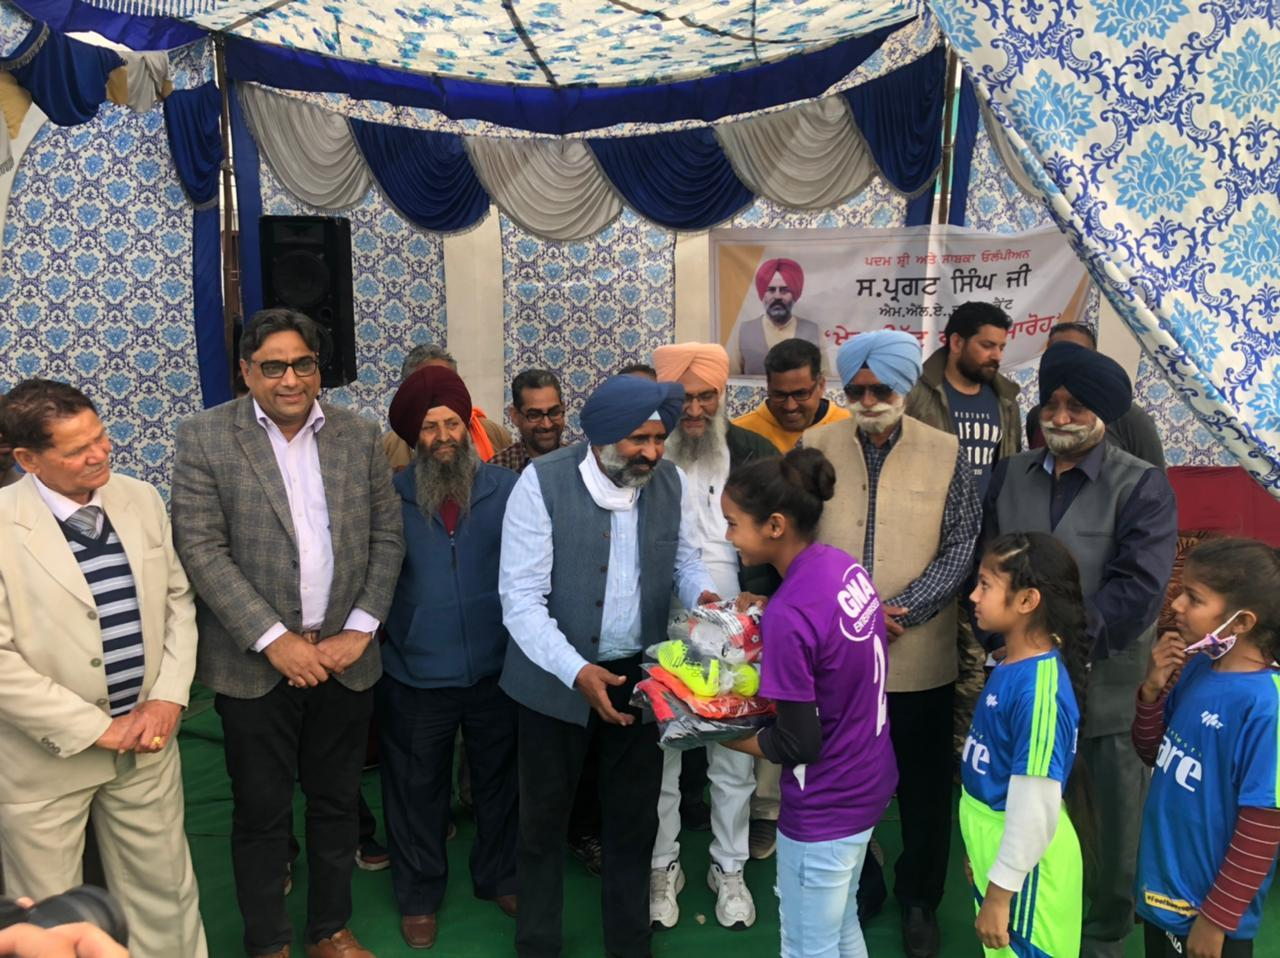 Pargat SinghMLA hands over 100 sports kits at Jamsher Football Ground